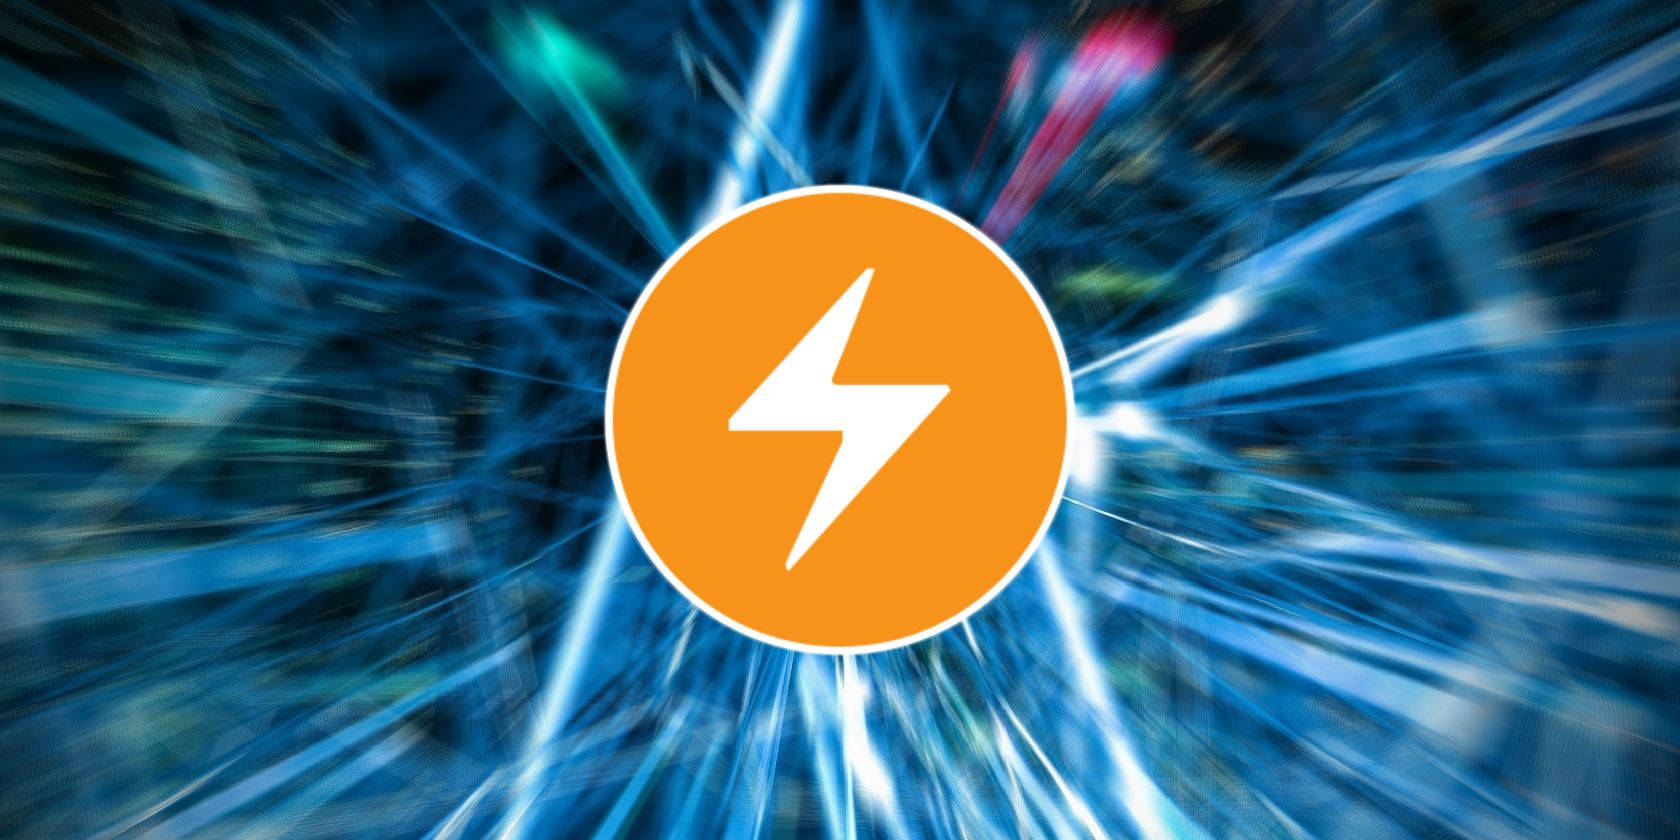 What Is the Bitcoin Lightning Network and How Does It Help Scale Bitcoin?